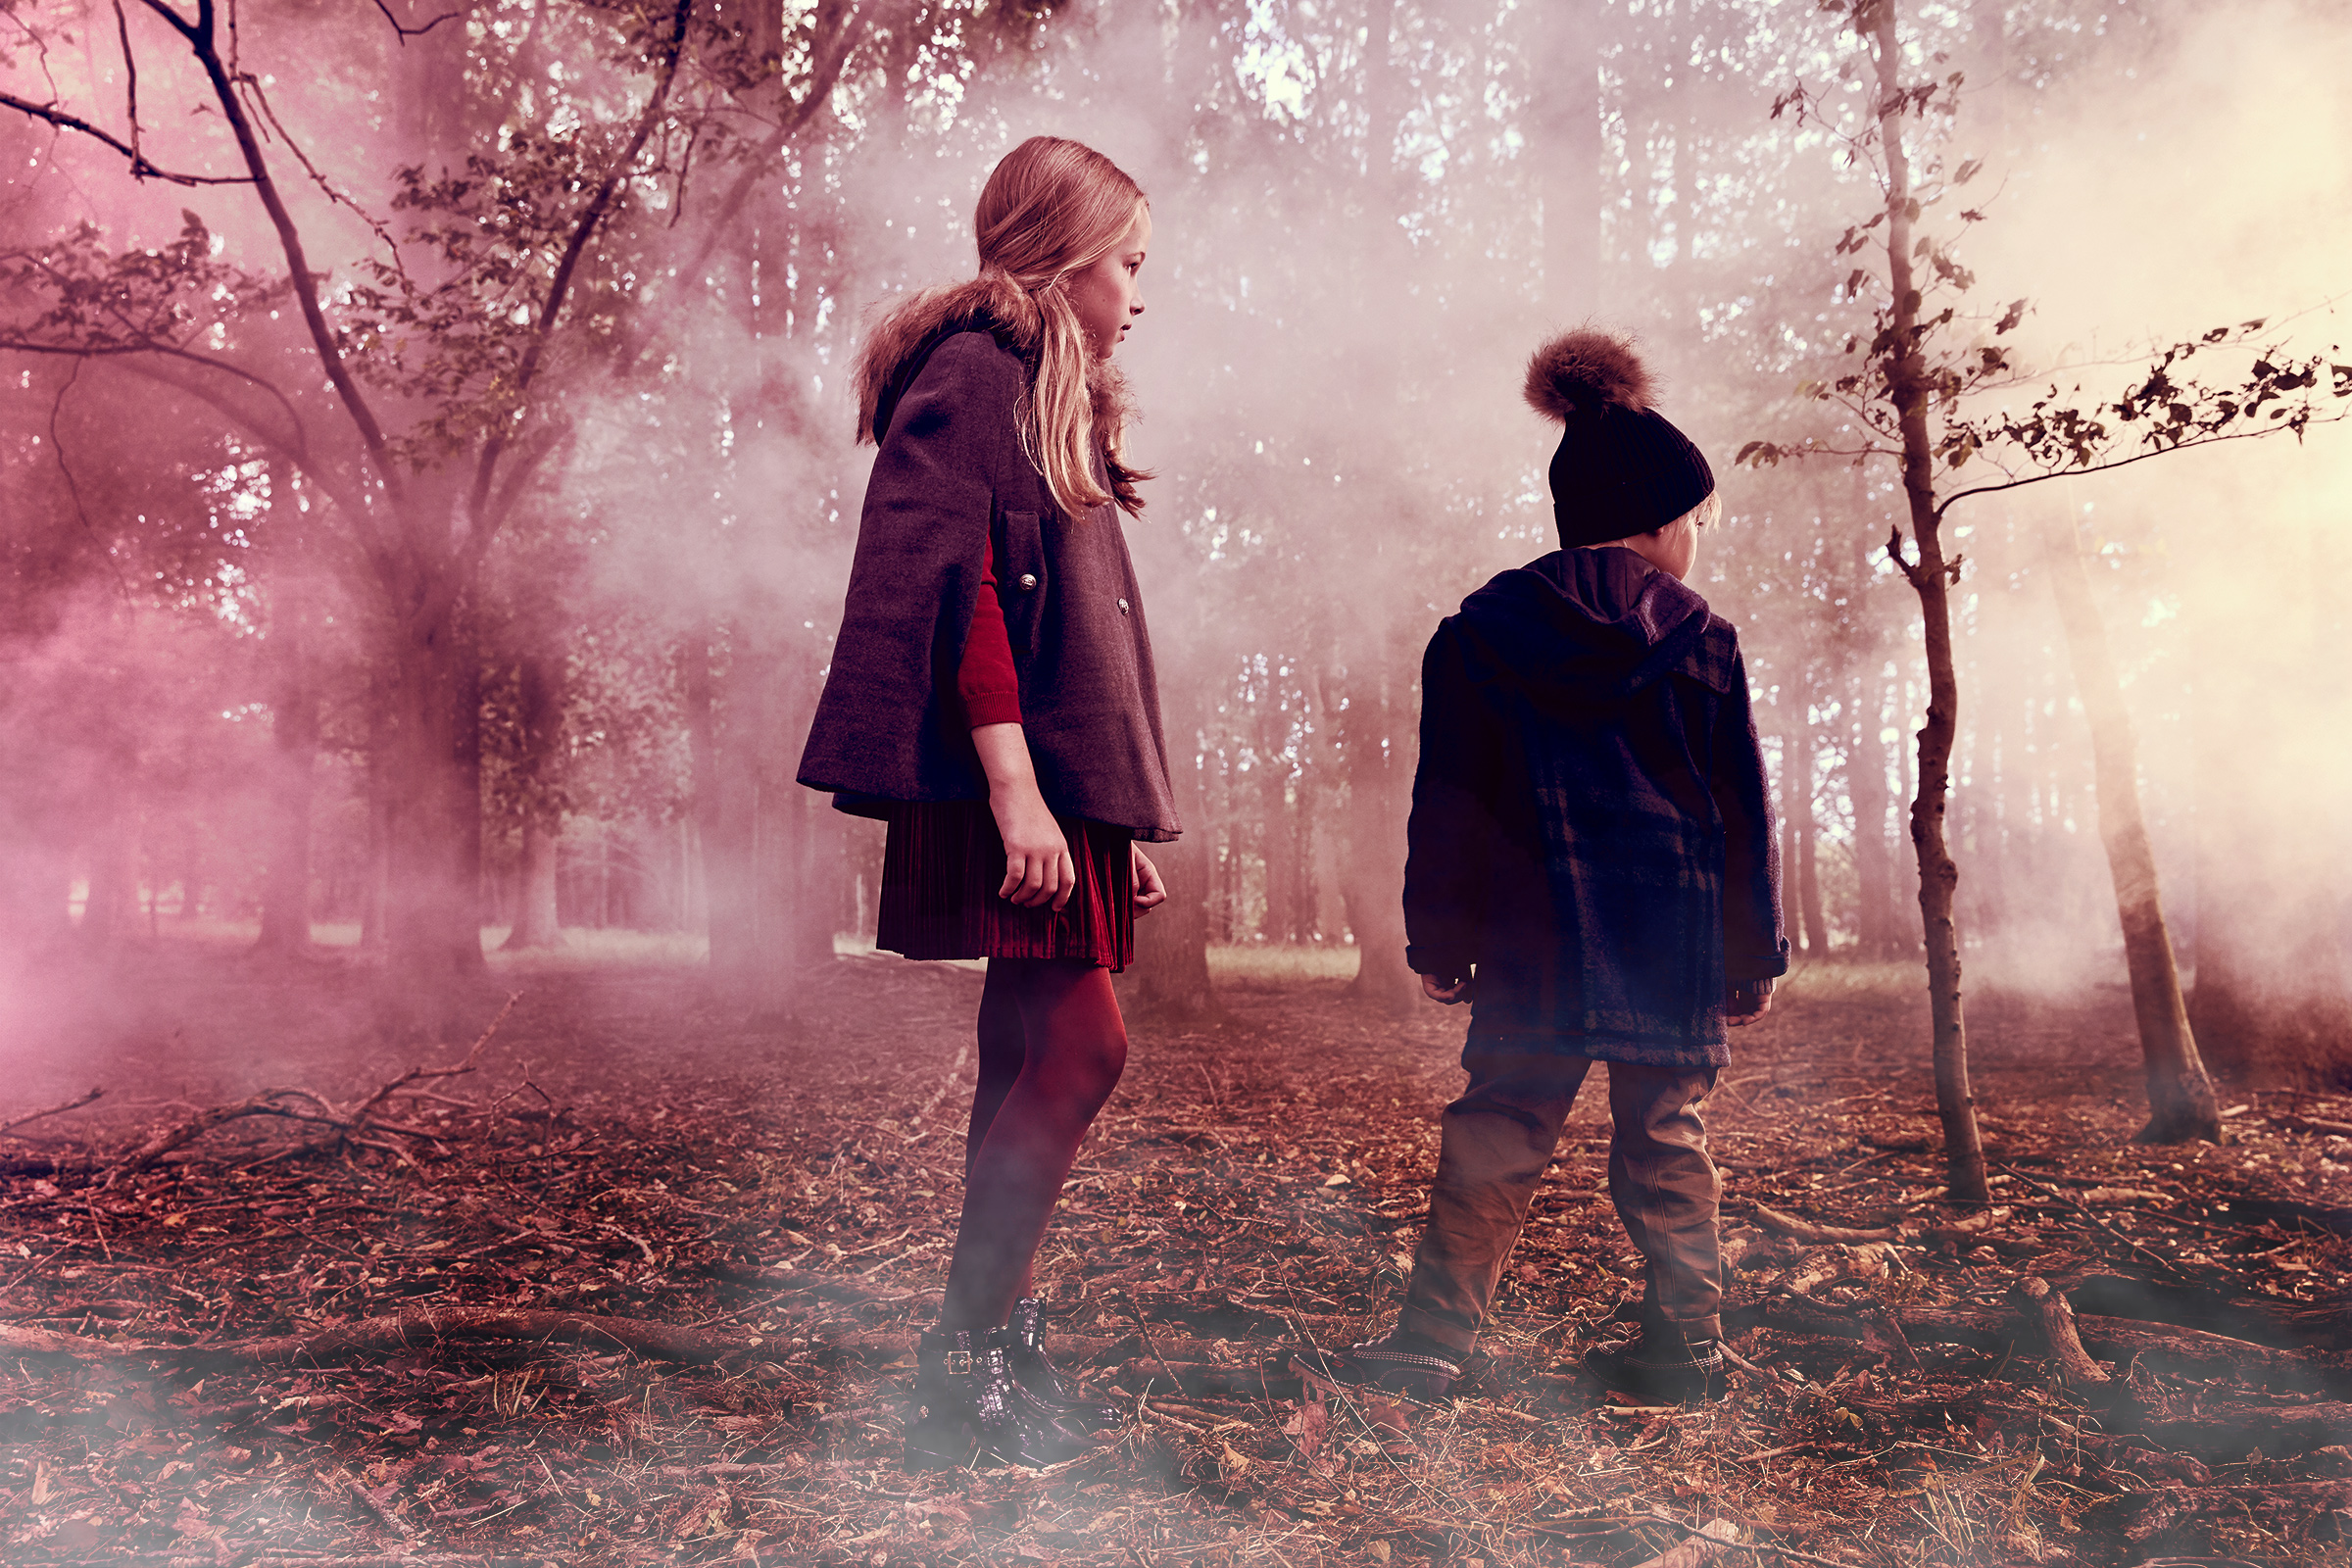 Boy and girl in woodland fashion story